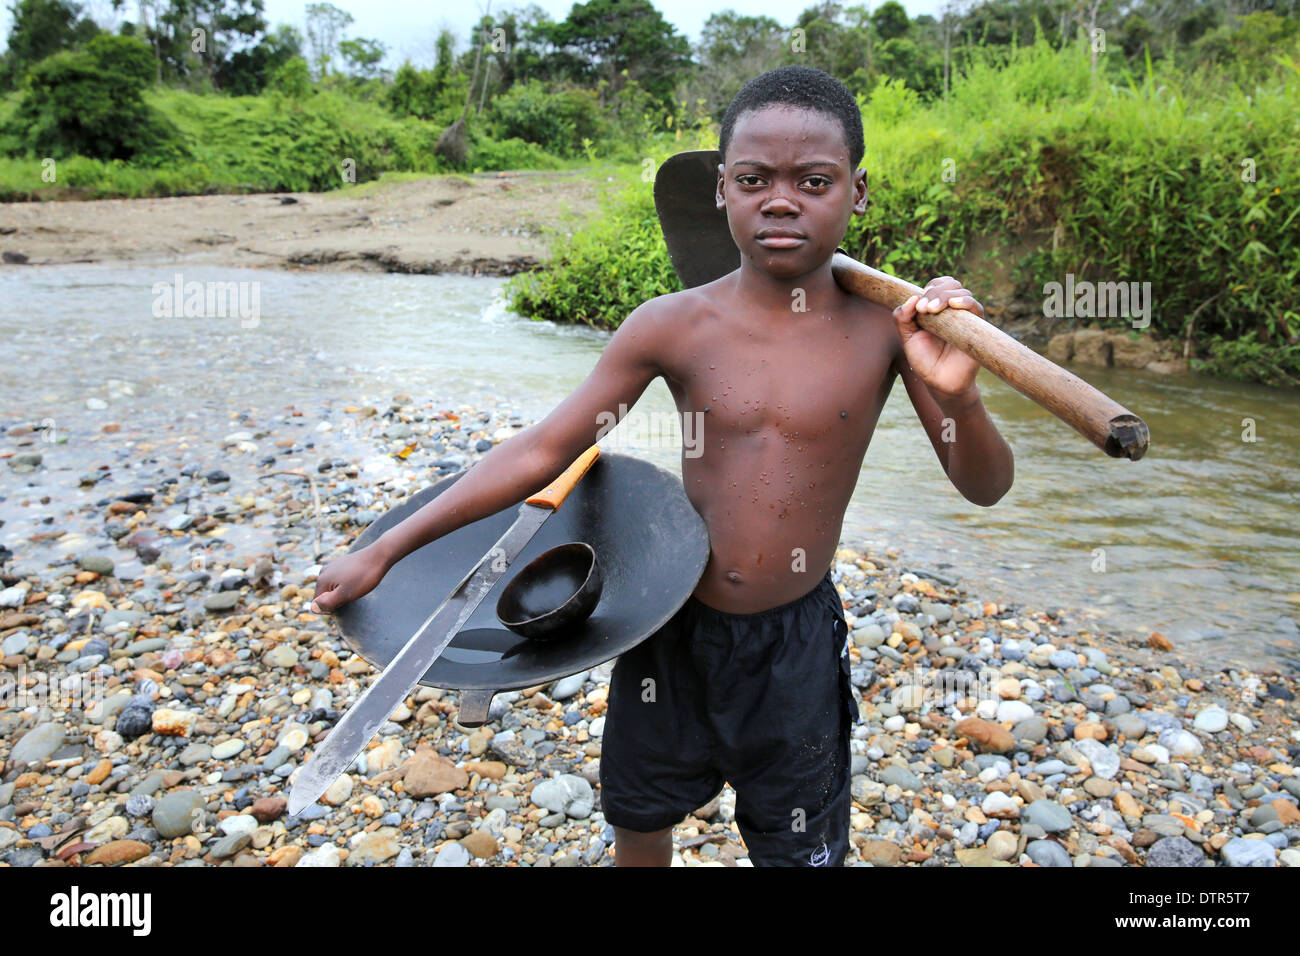 Gold digger boy with pan, shovel and machete in a river, Choco Province, Columbia, South America - Stock Image